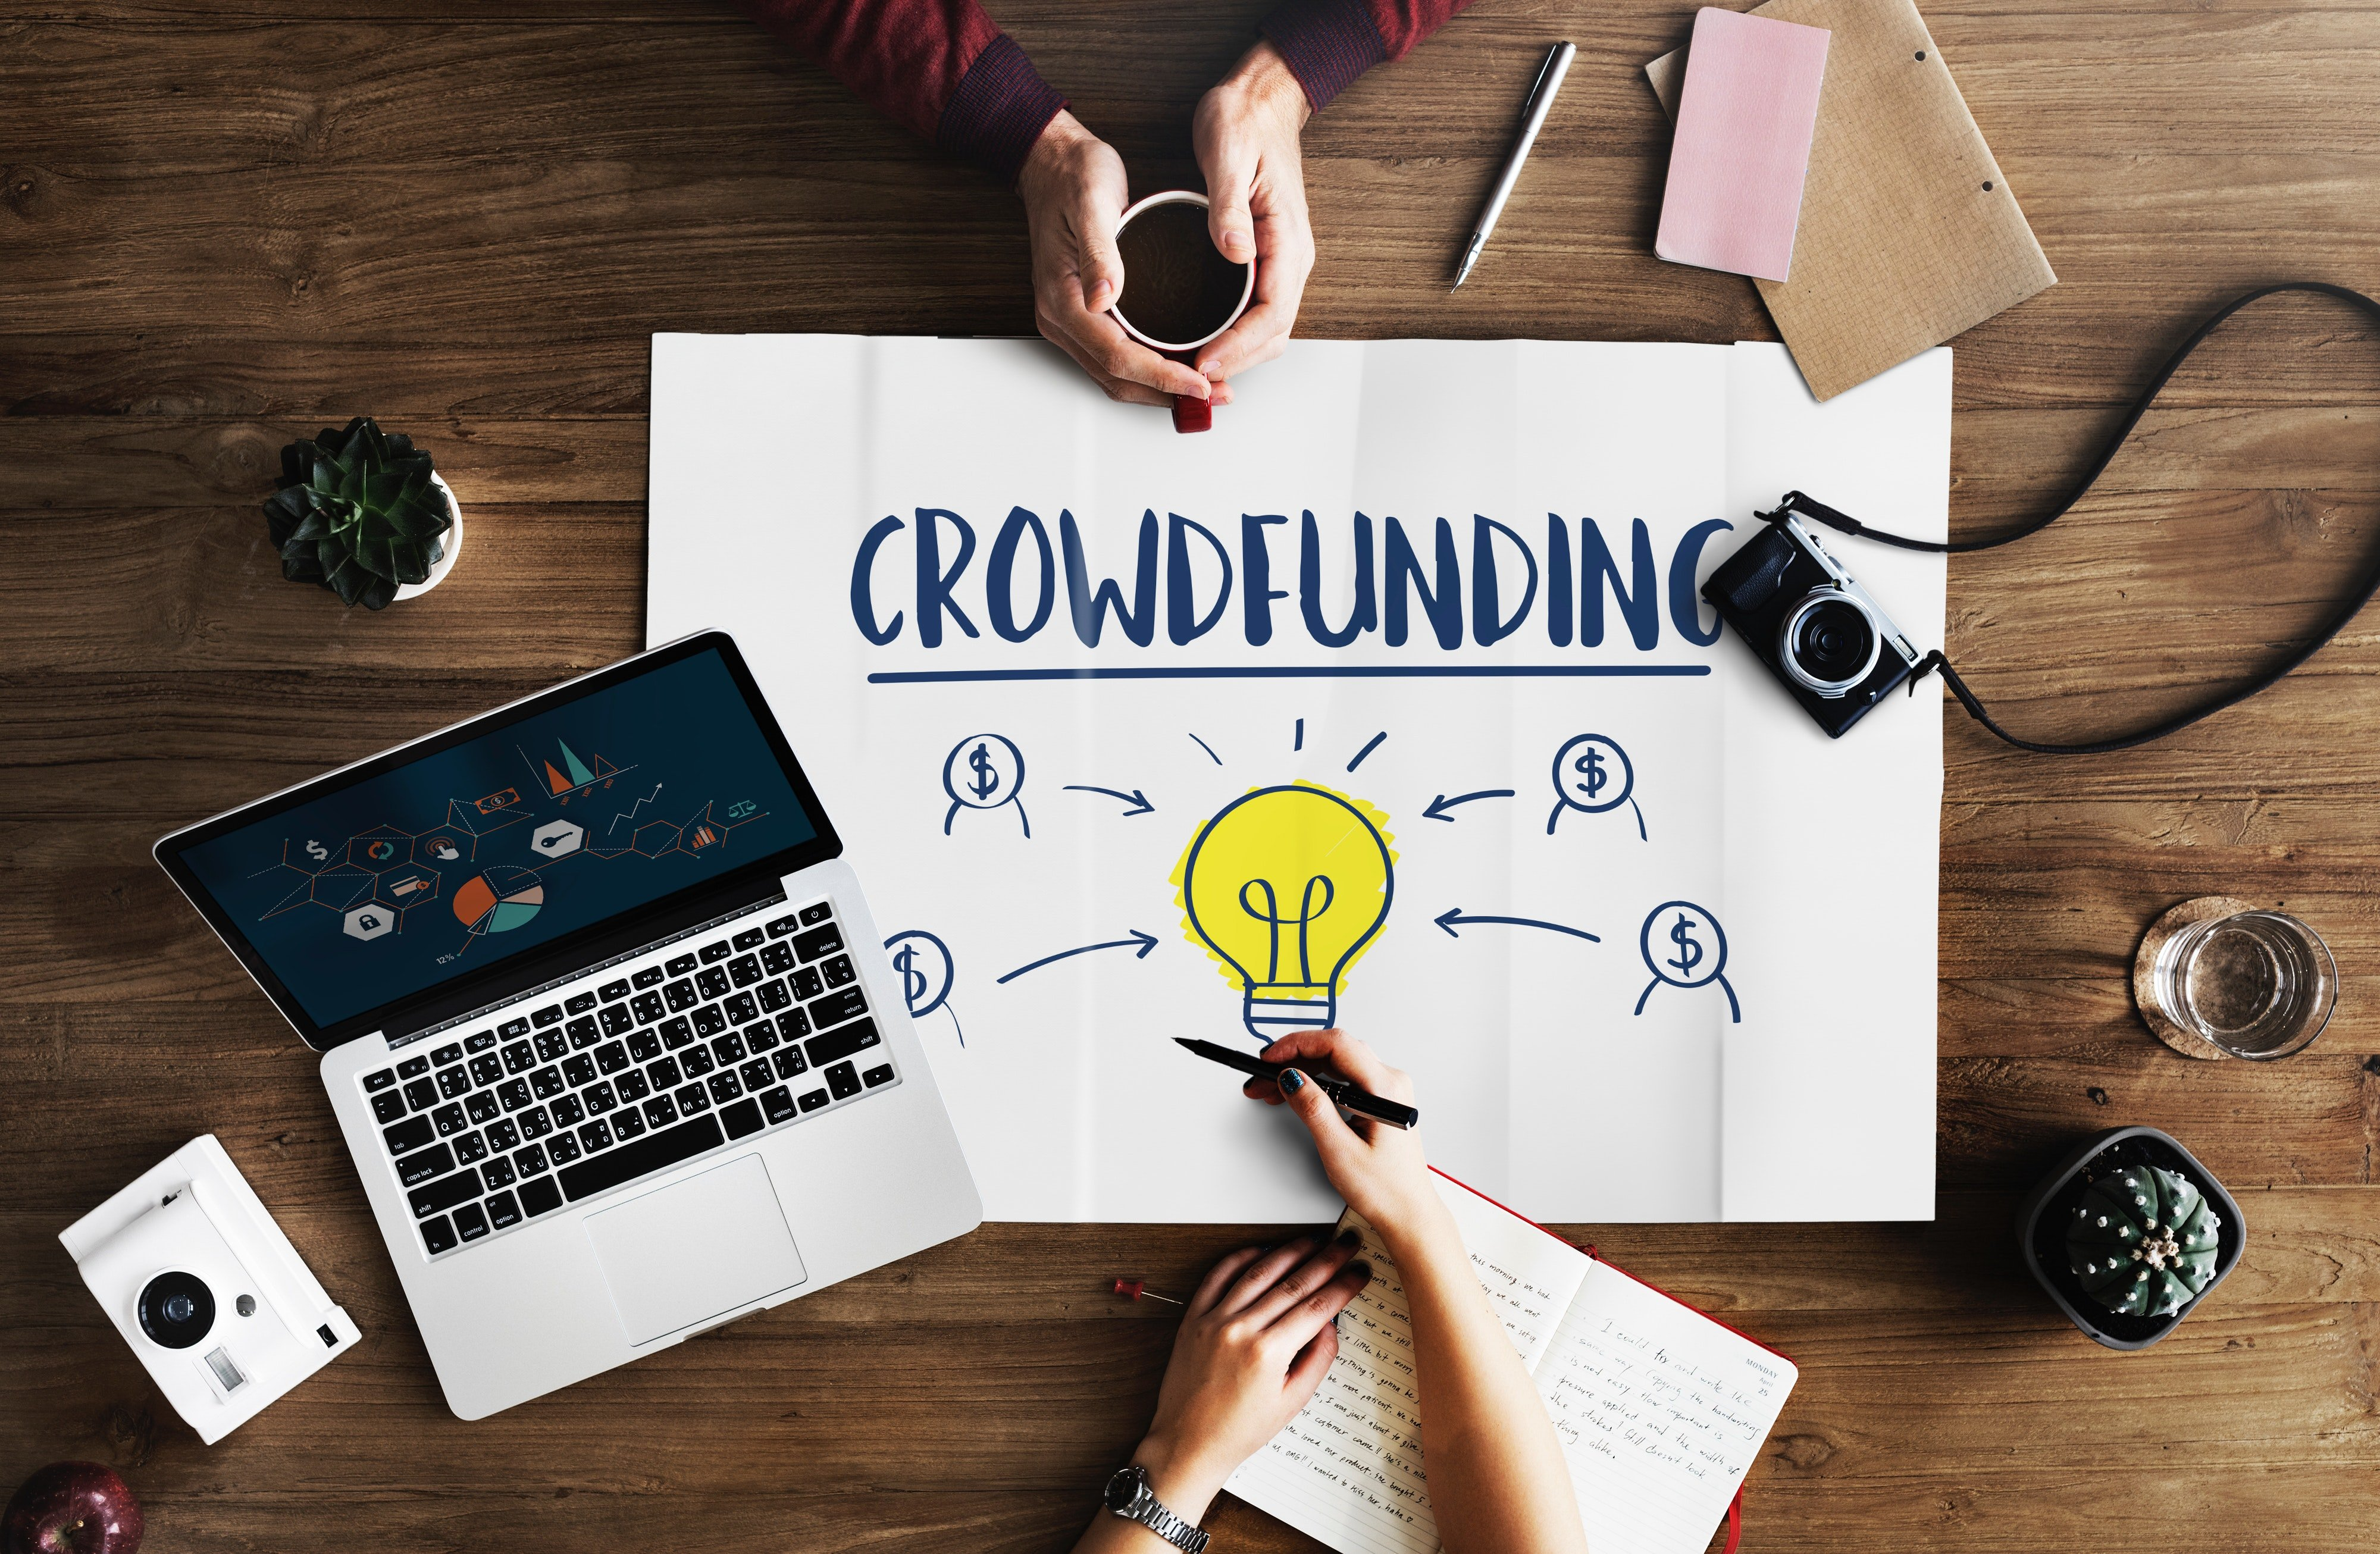 Equity crownfunding